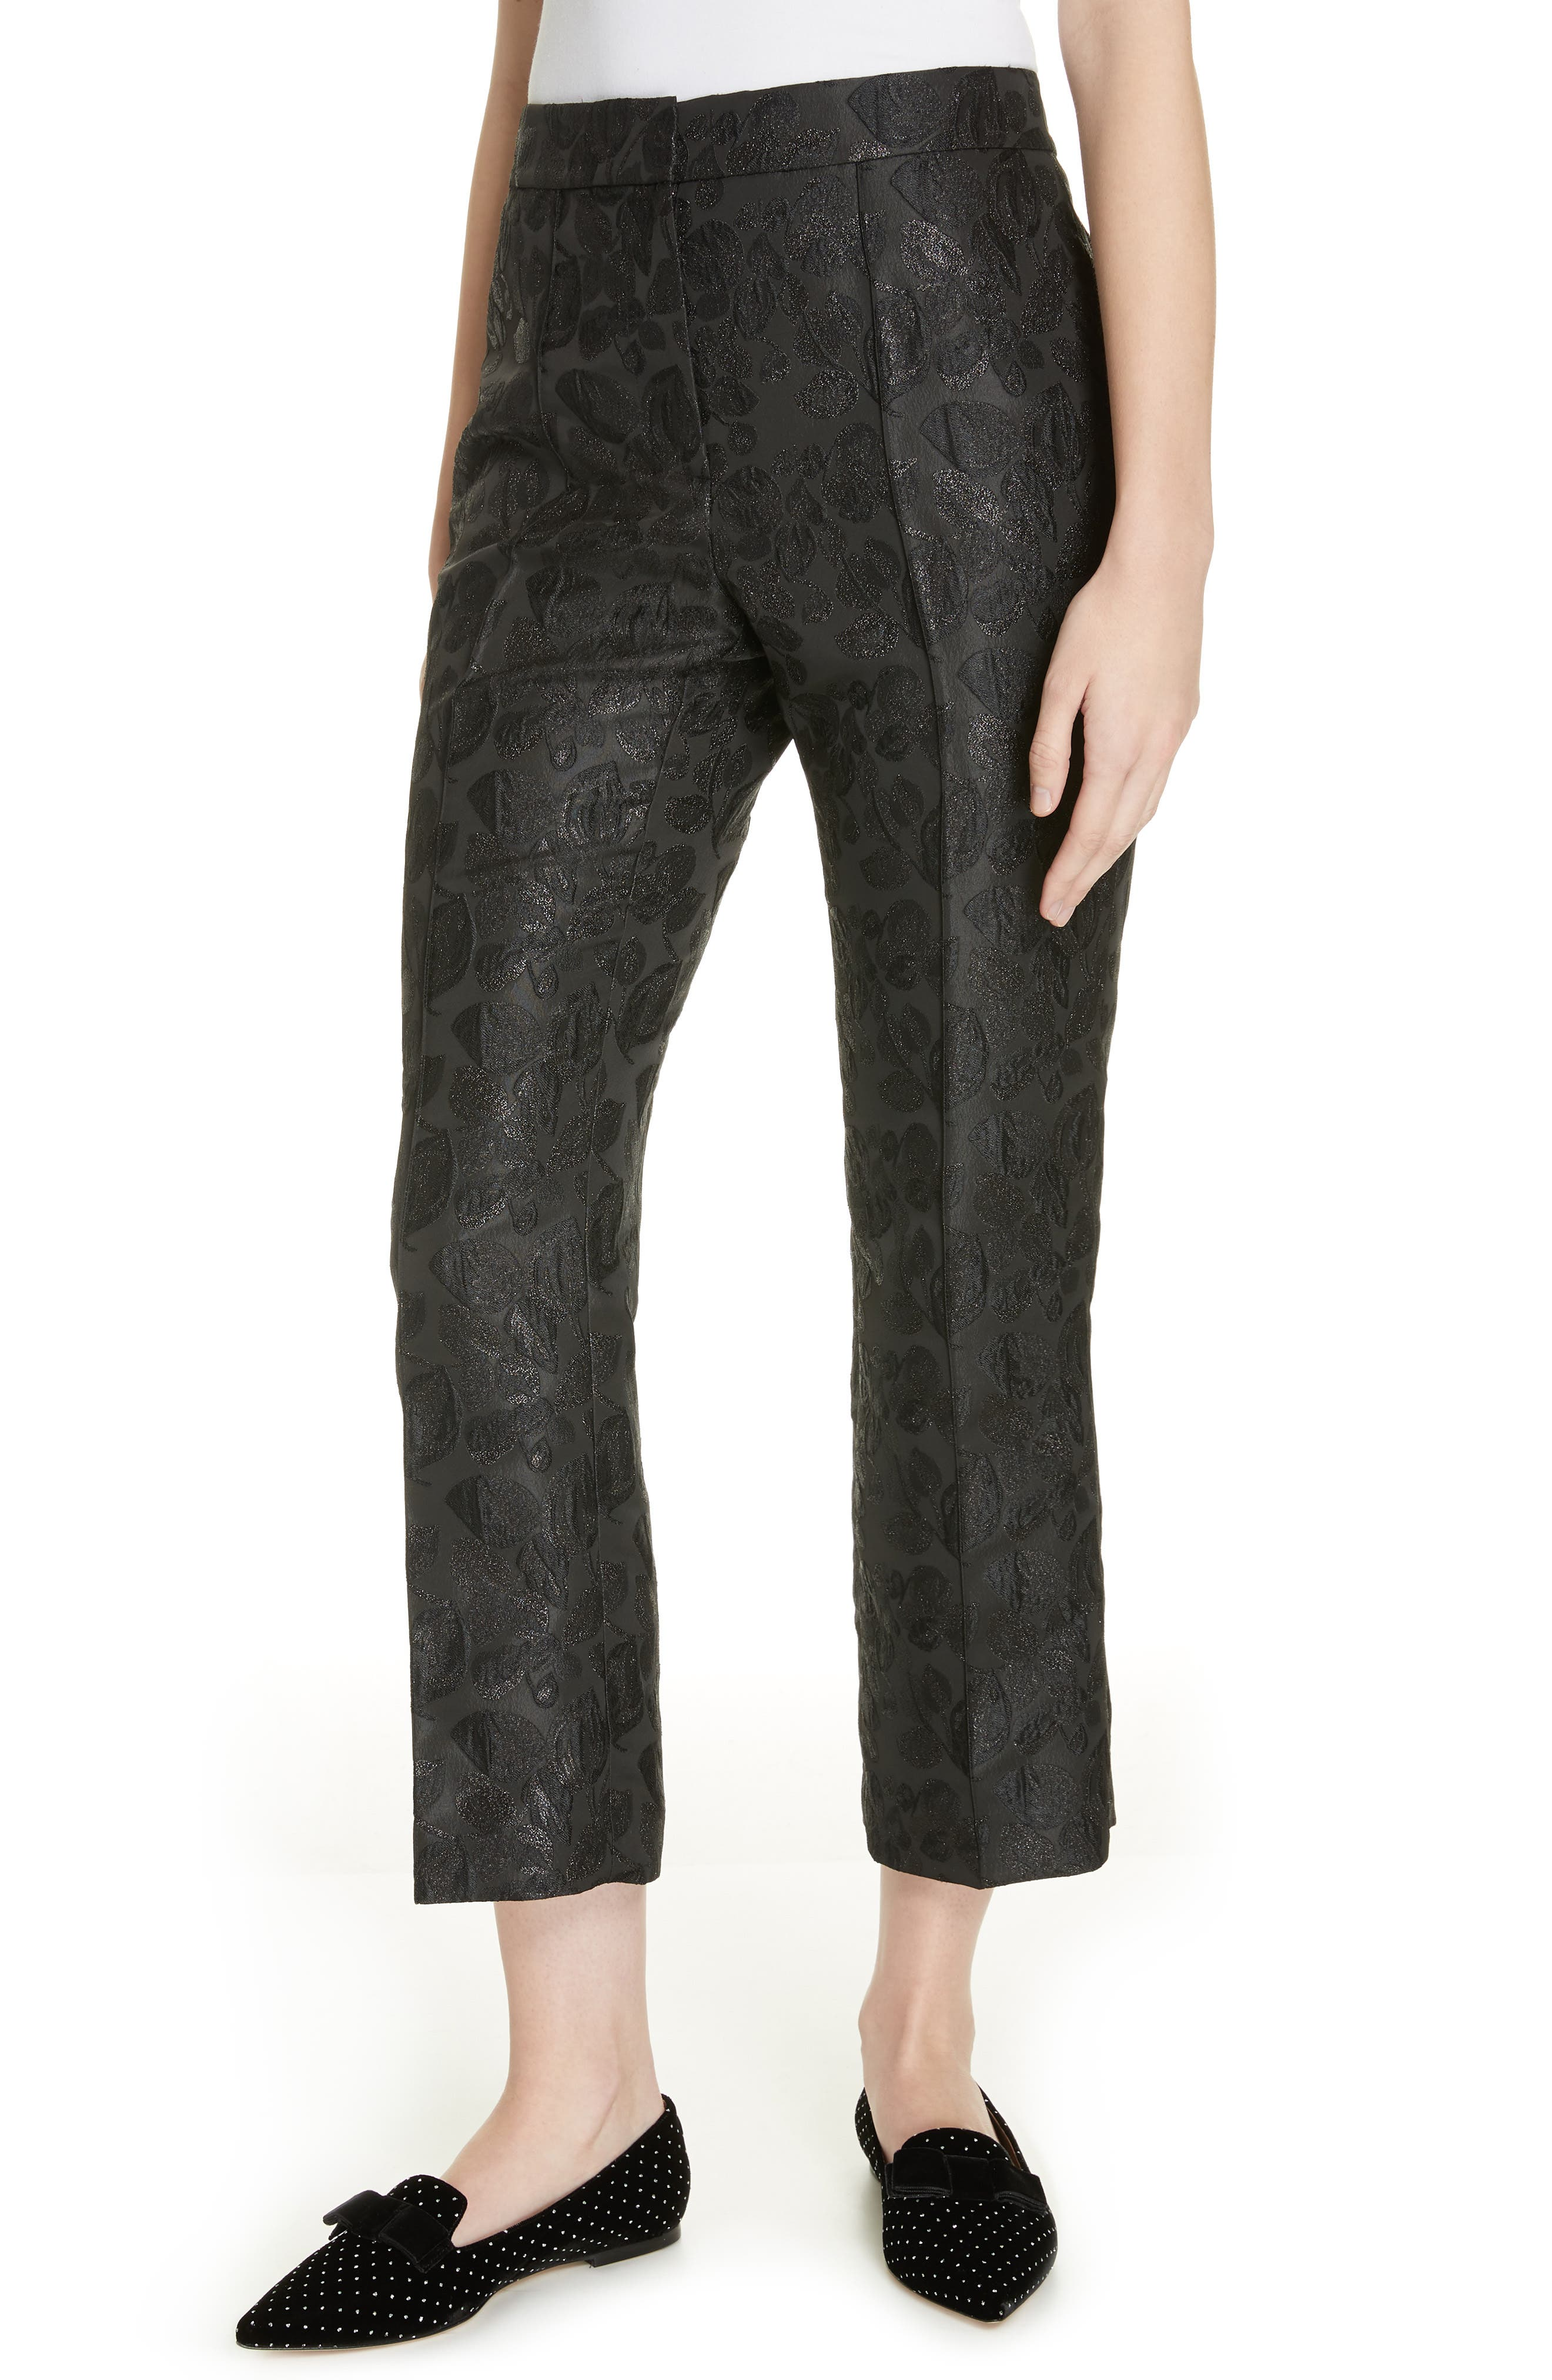 Kate Spade New York Metallic Tonal Jacquard Flare Pants